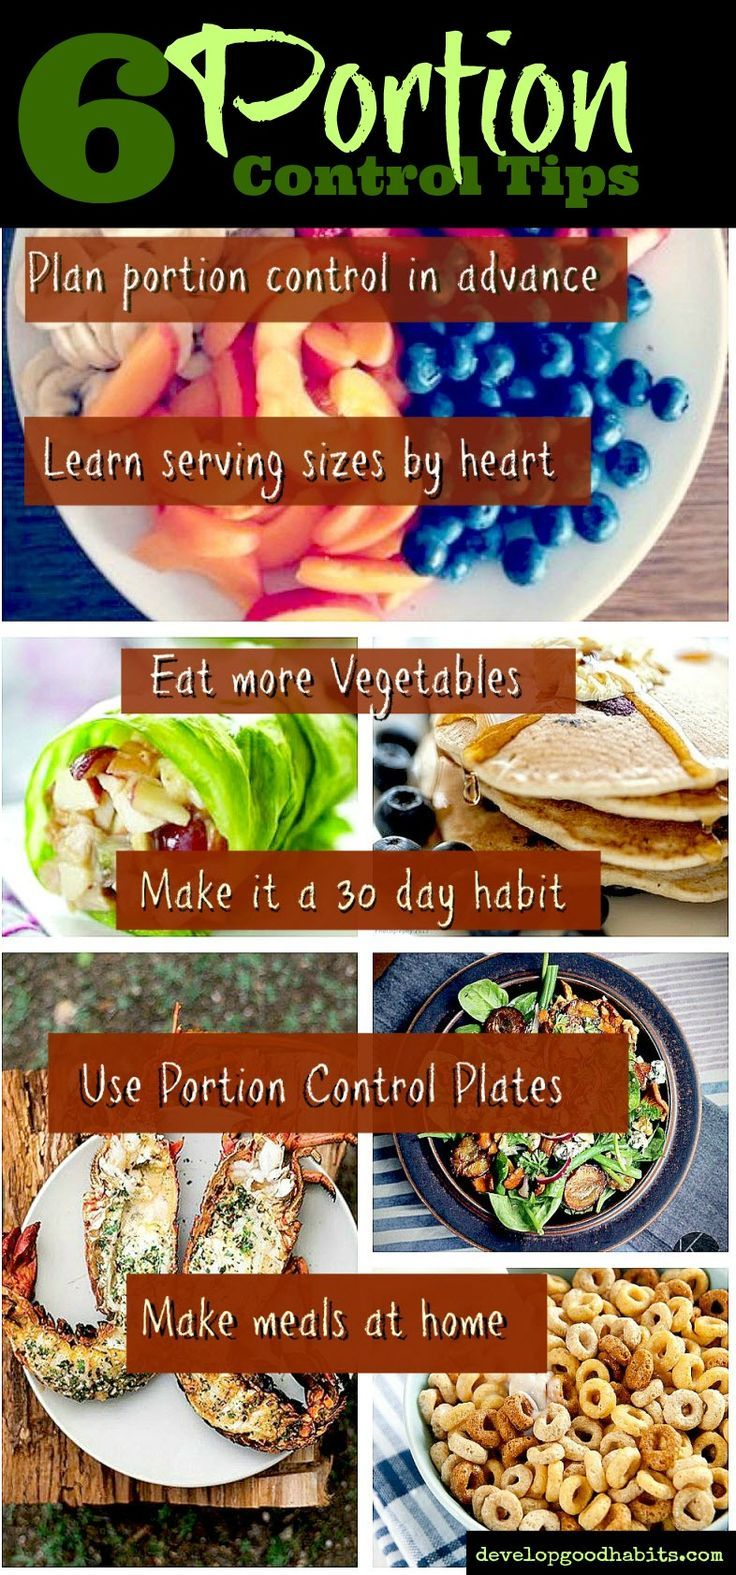 Think Portion Control: Diets don't really work that well long term.  Sensible eating will do you a lot better than any diet ever could.  These few sensible eating and portion control tips could be more valuable than any popular diet.  www.developgoodha...